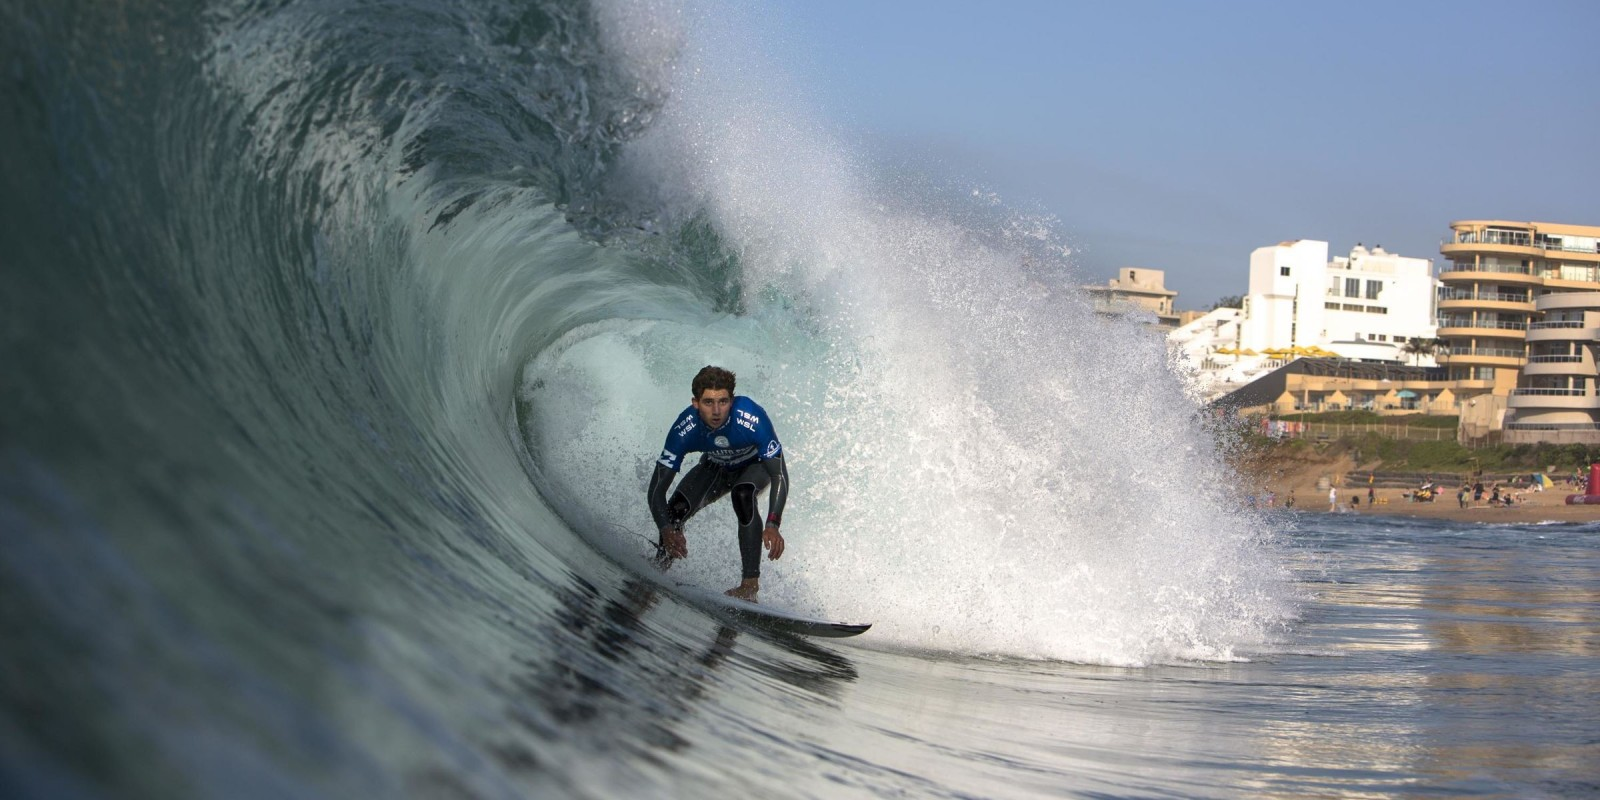 Day 1 & 2 highlights of the Ballito Pro.